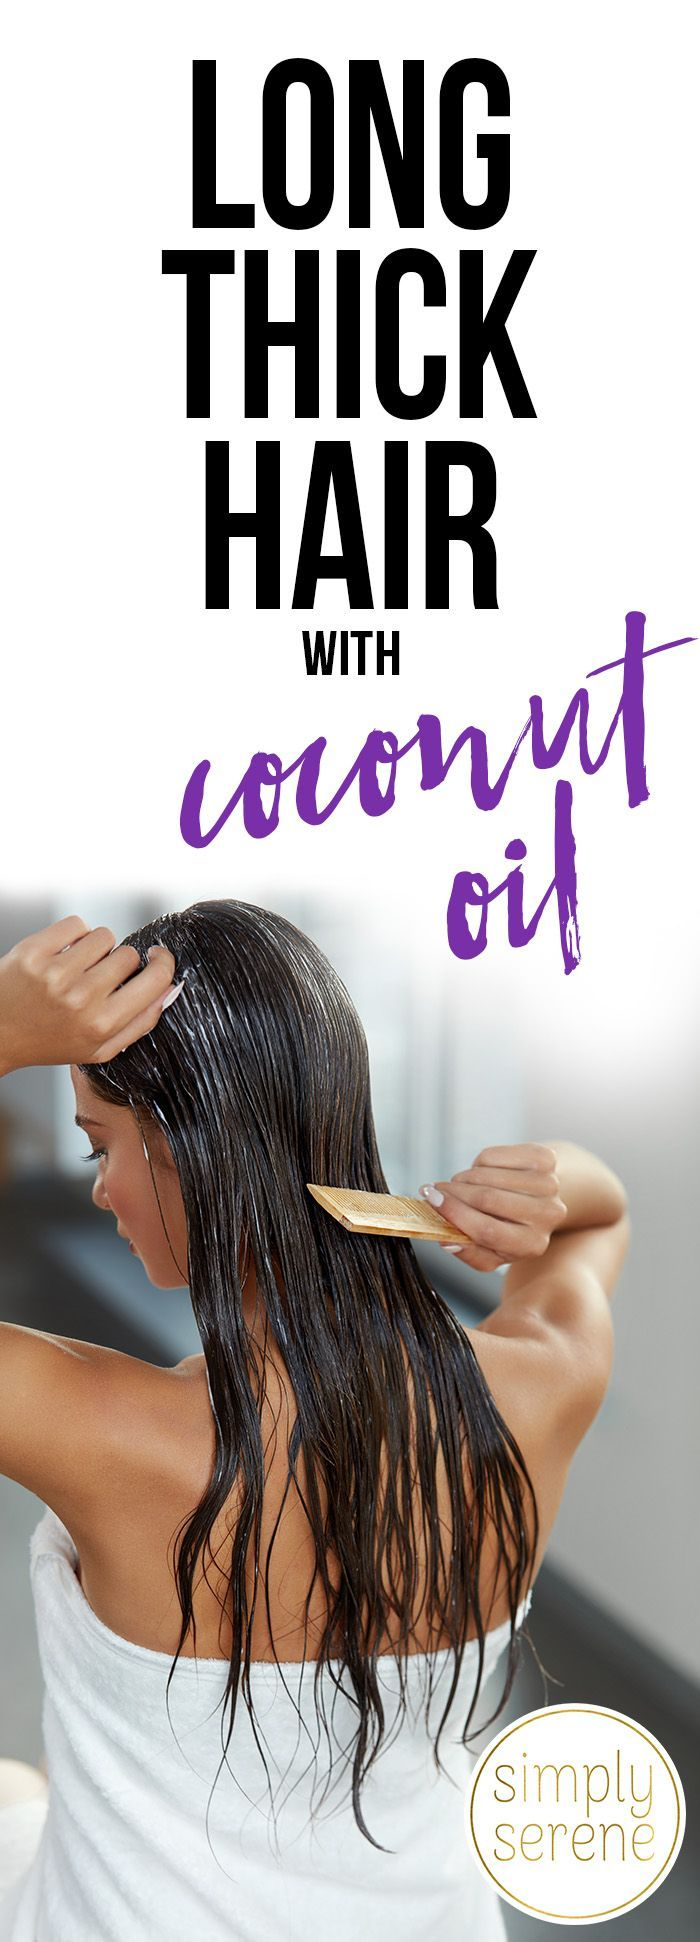 Growing long hair   long hair tips   how to get long hair   really long hair   super long hair   long hair care   grow long hair fast   thick long hair #longhair #coconutoil